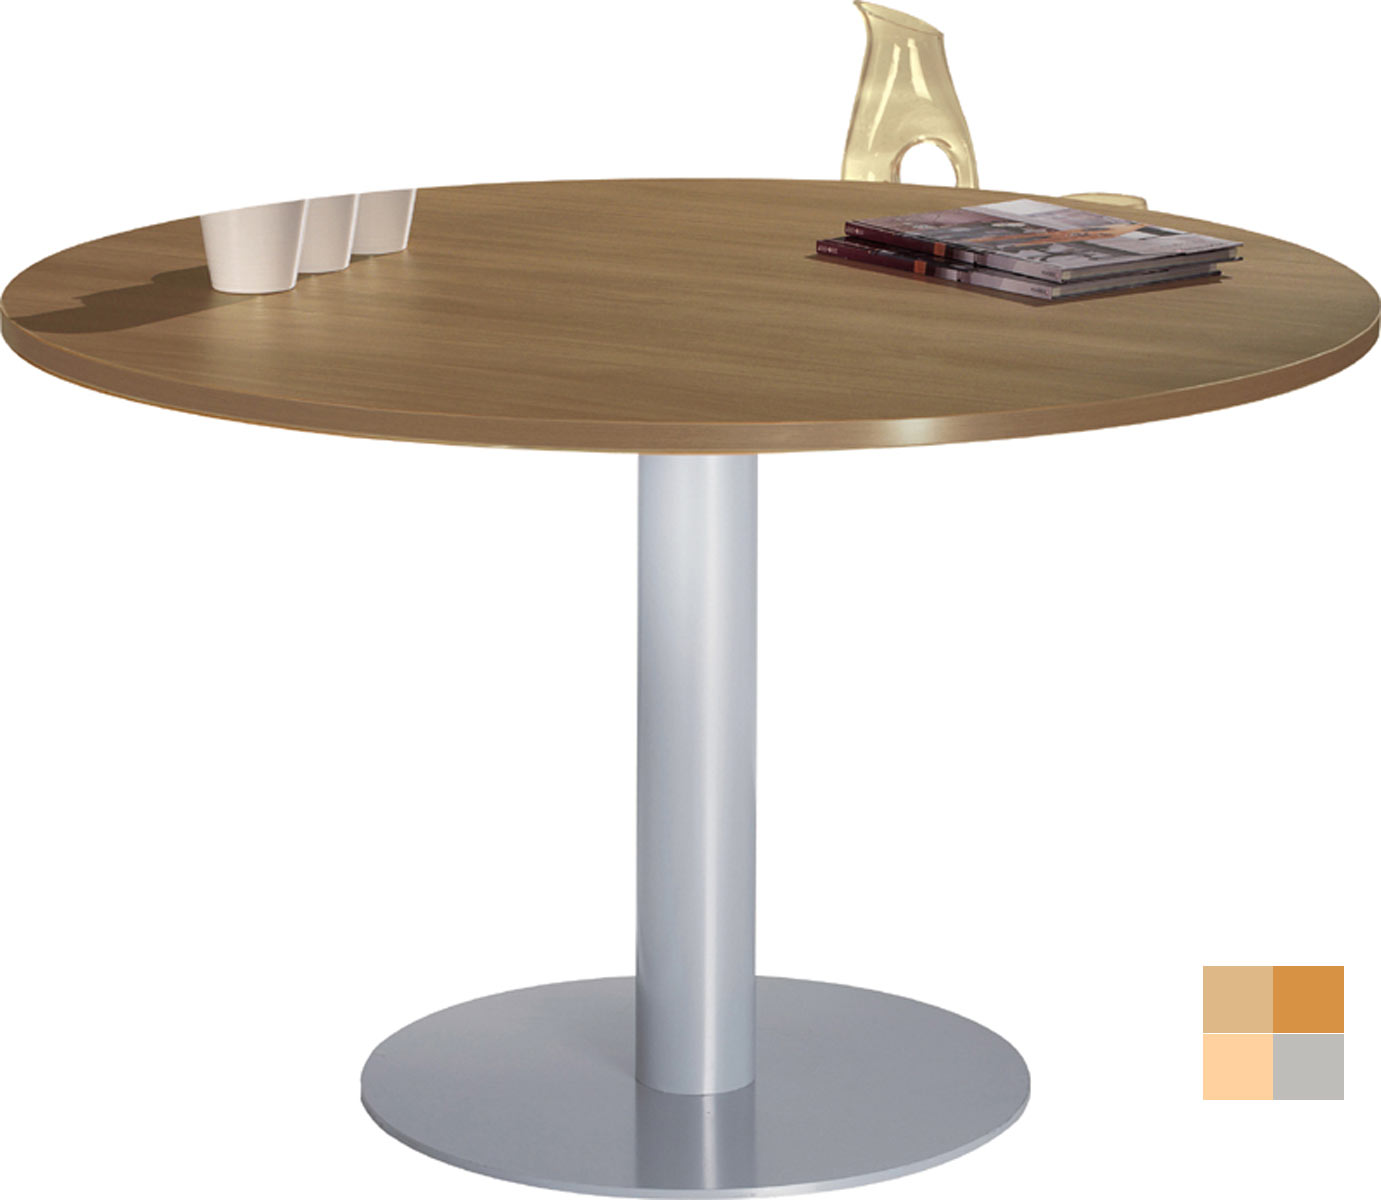 Table ronde for Table ronde de cuisine avec rallonge